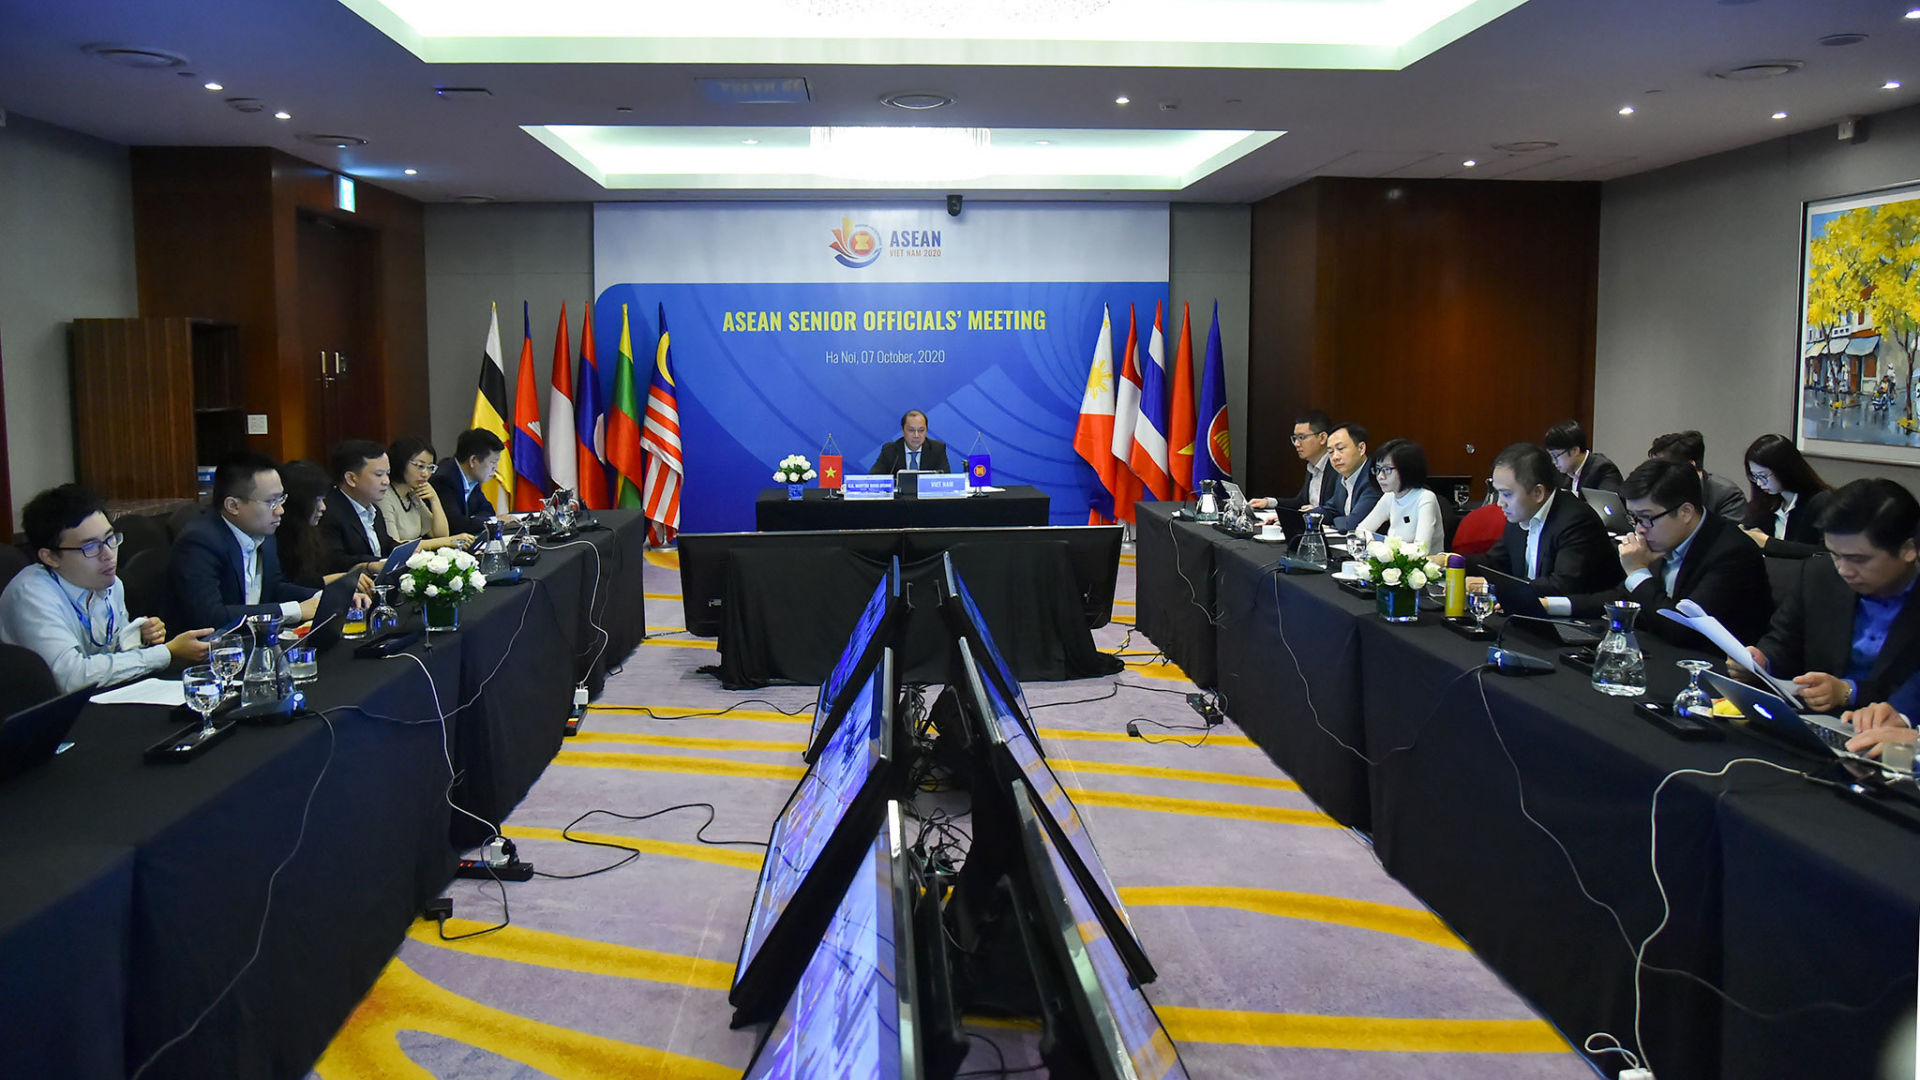 ASEAN pledges to coordinate with China to soon complete talks for Code of Conduct in South China Sea (Bien Dong Sea)